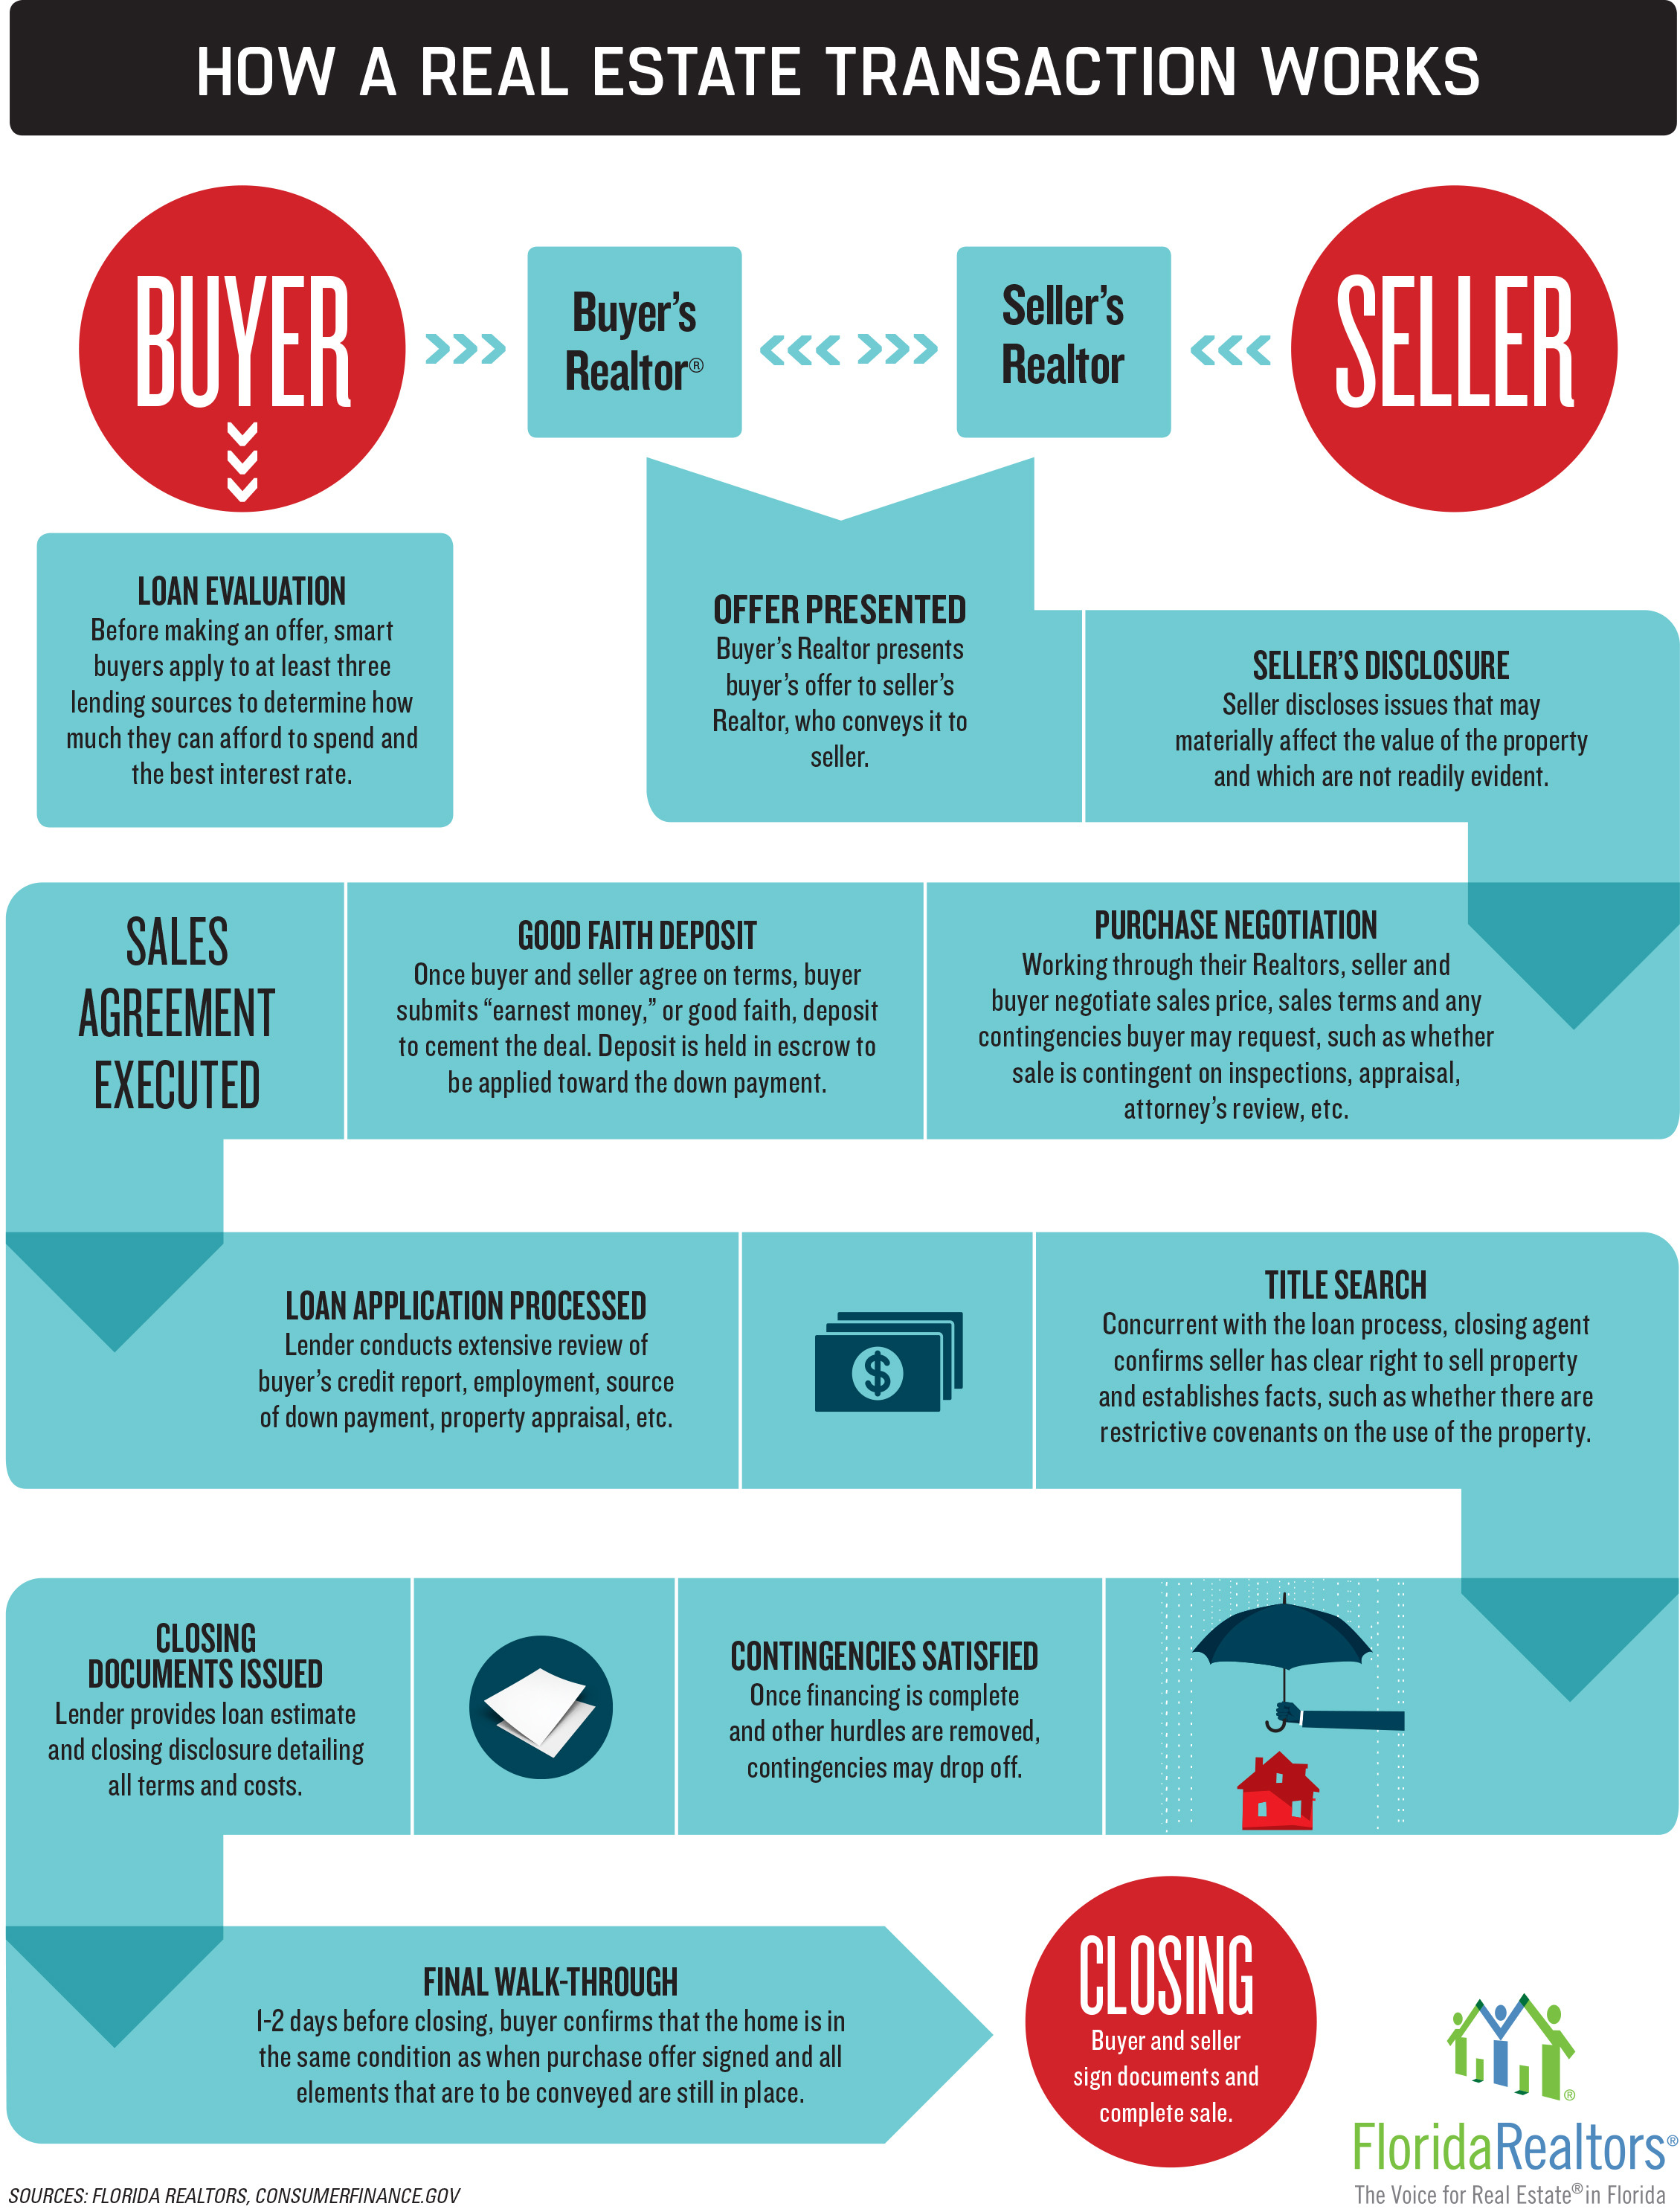 HOW DOES THE HOME BUYING & SELLING PROCESS WORK?